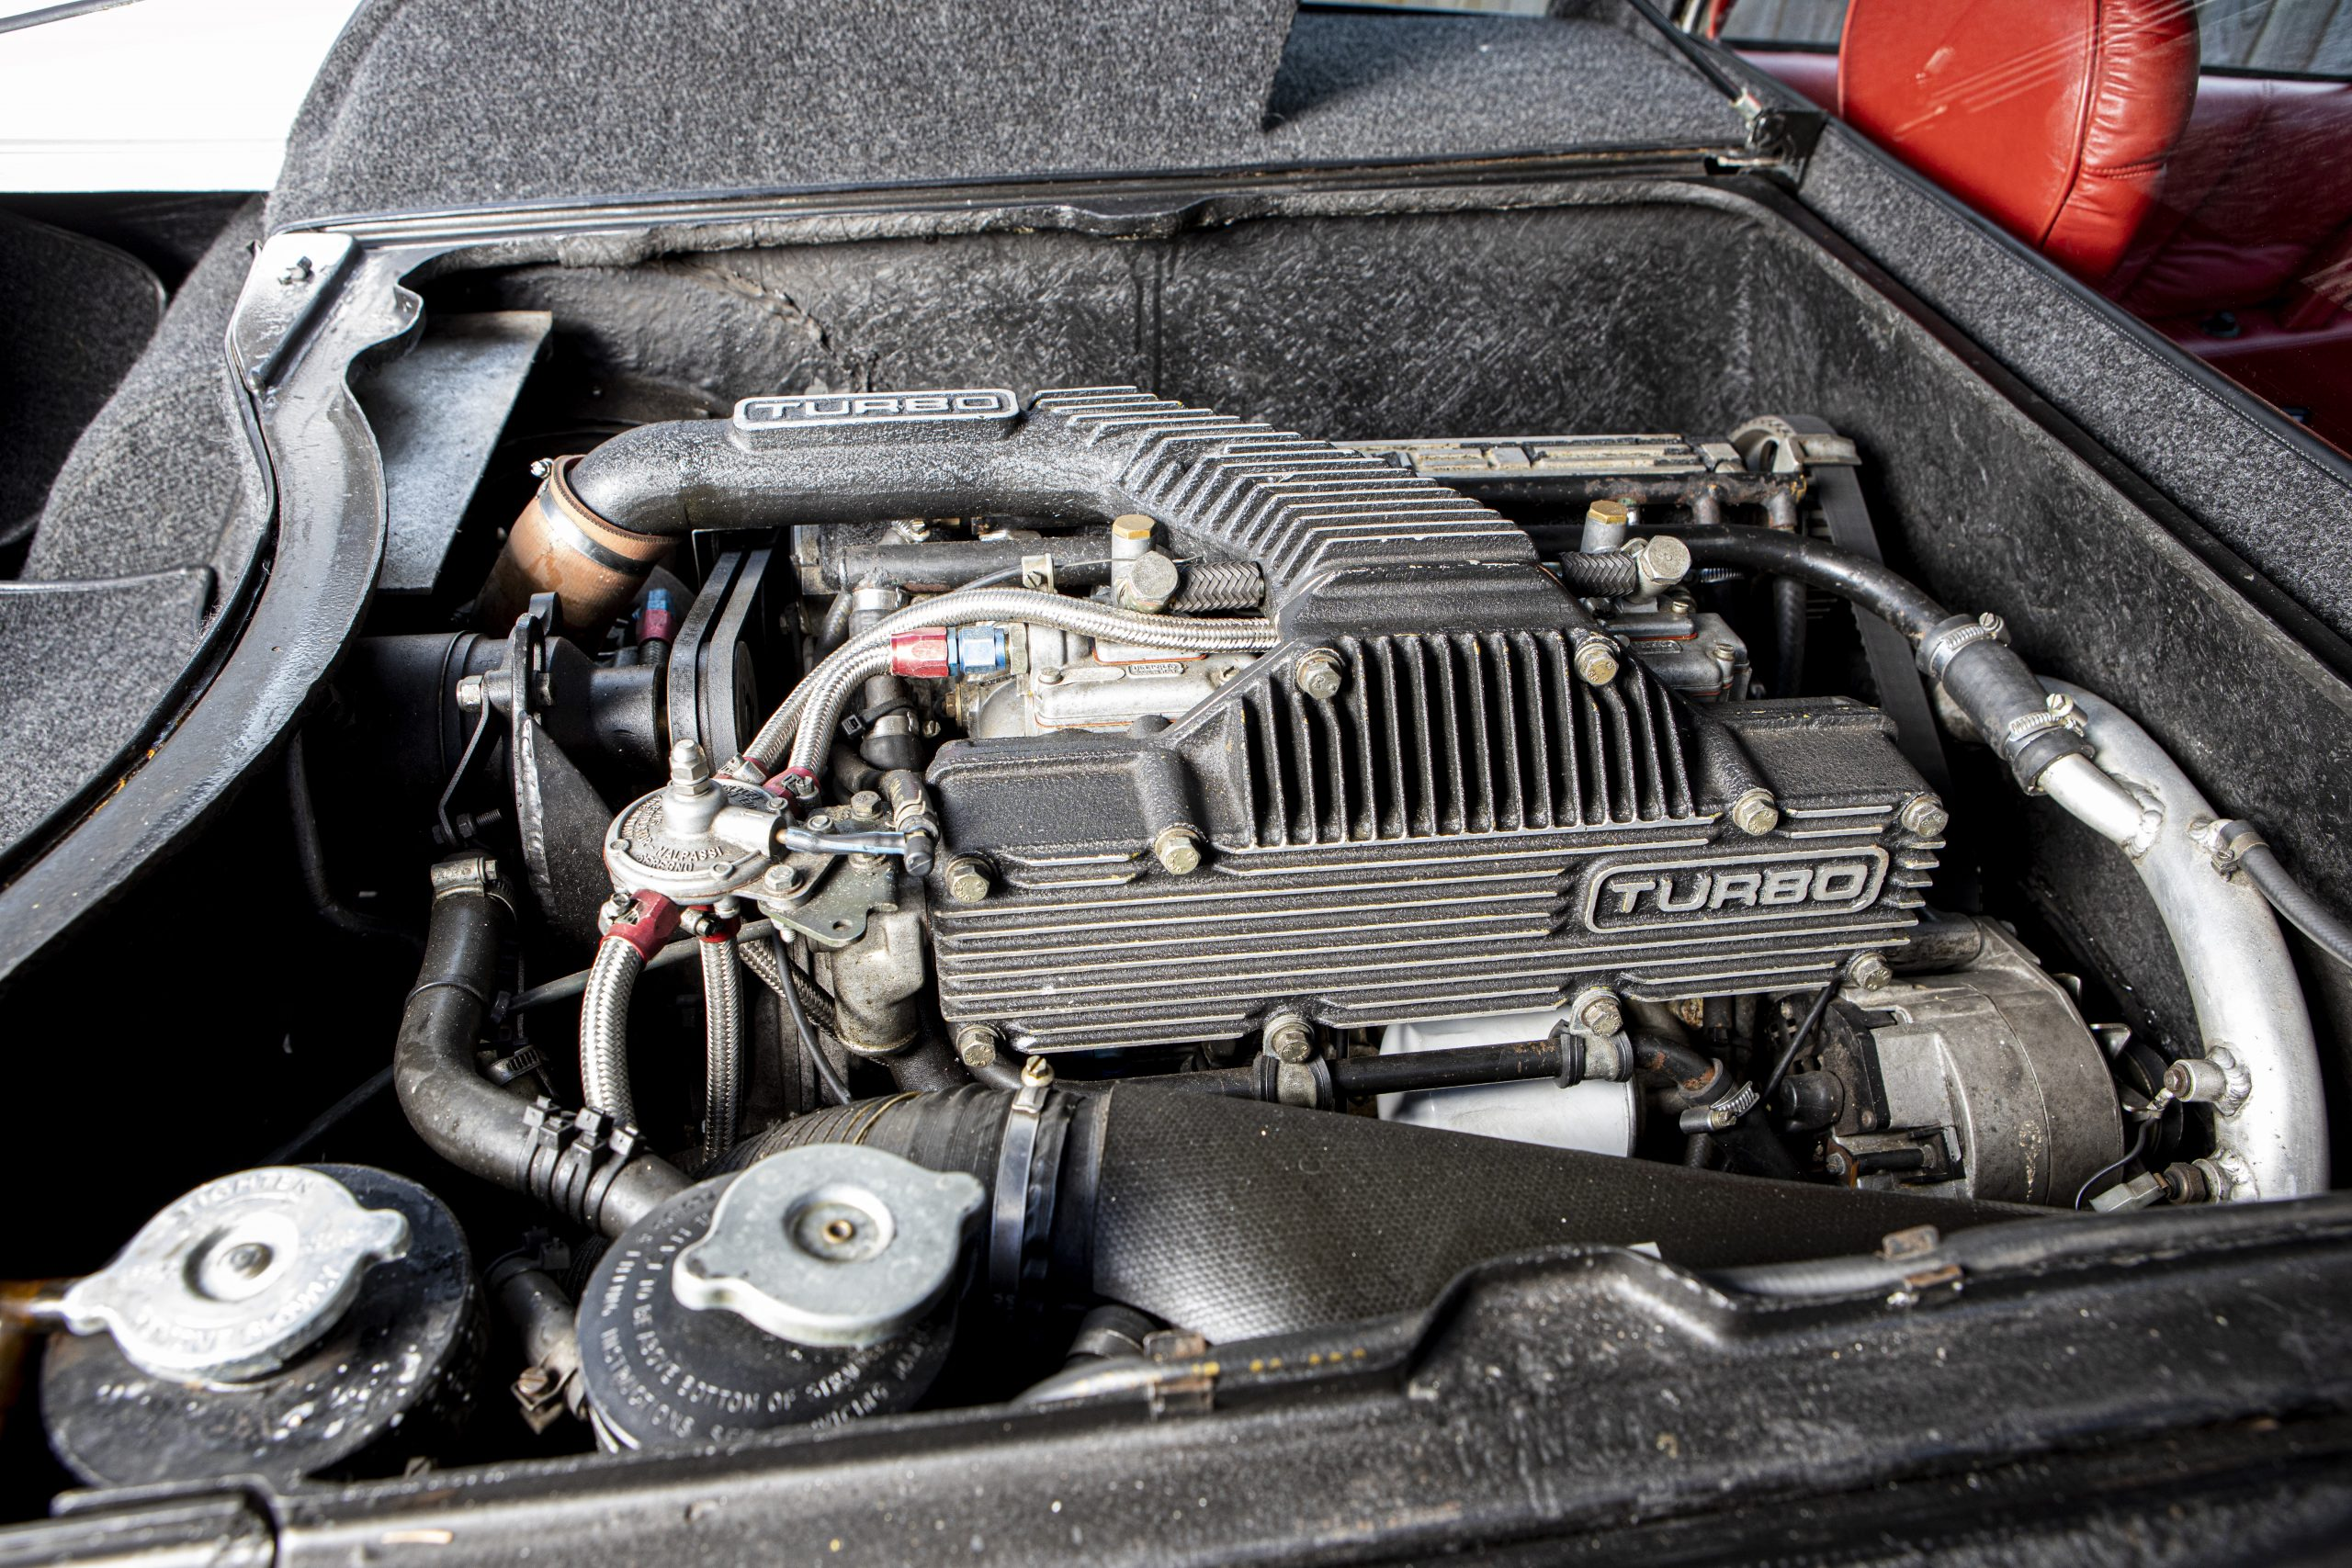 Lotus Espirit Series 3 Turbo Engine